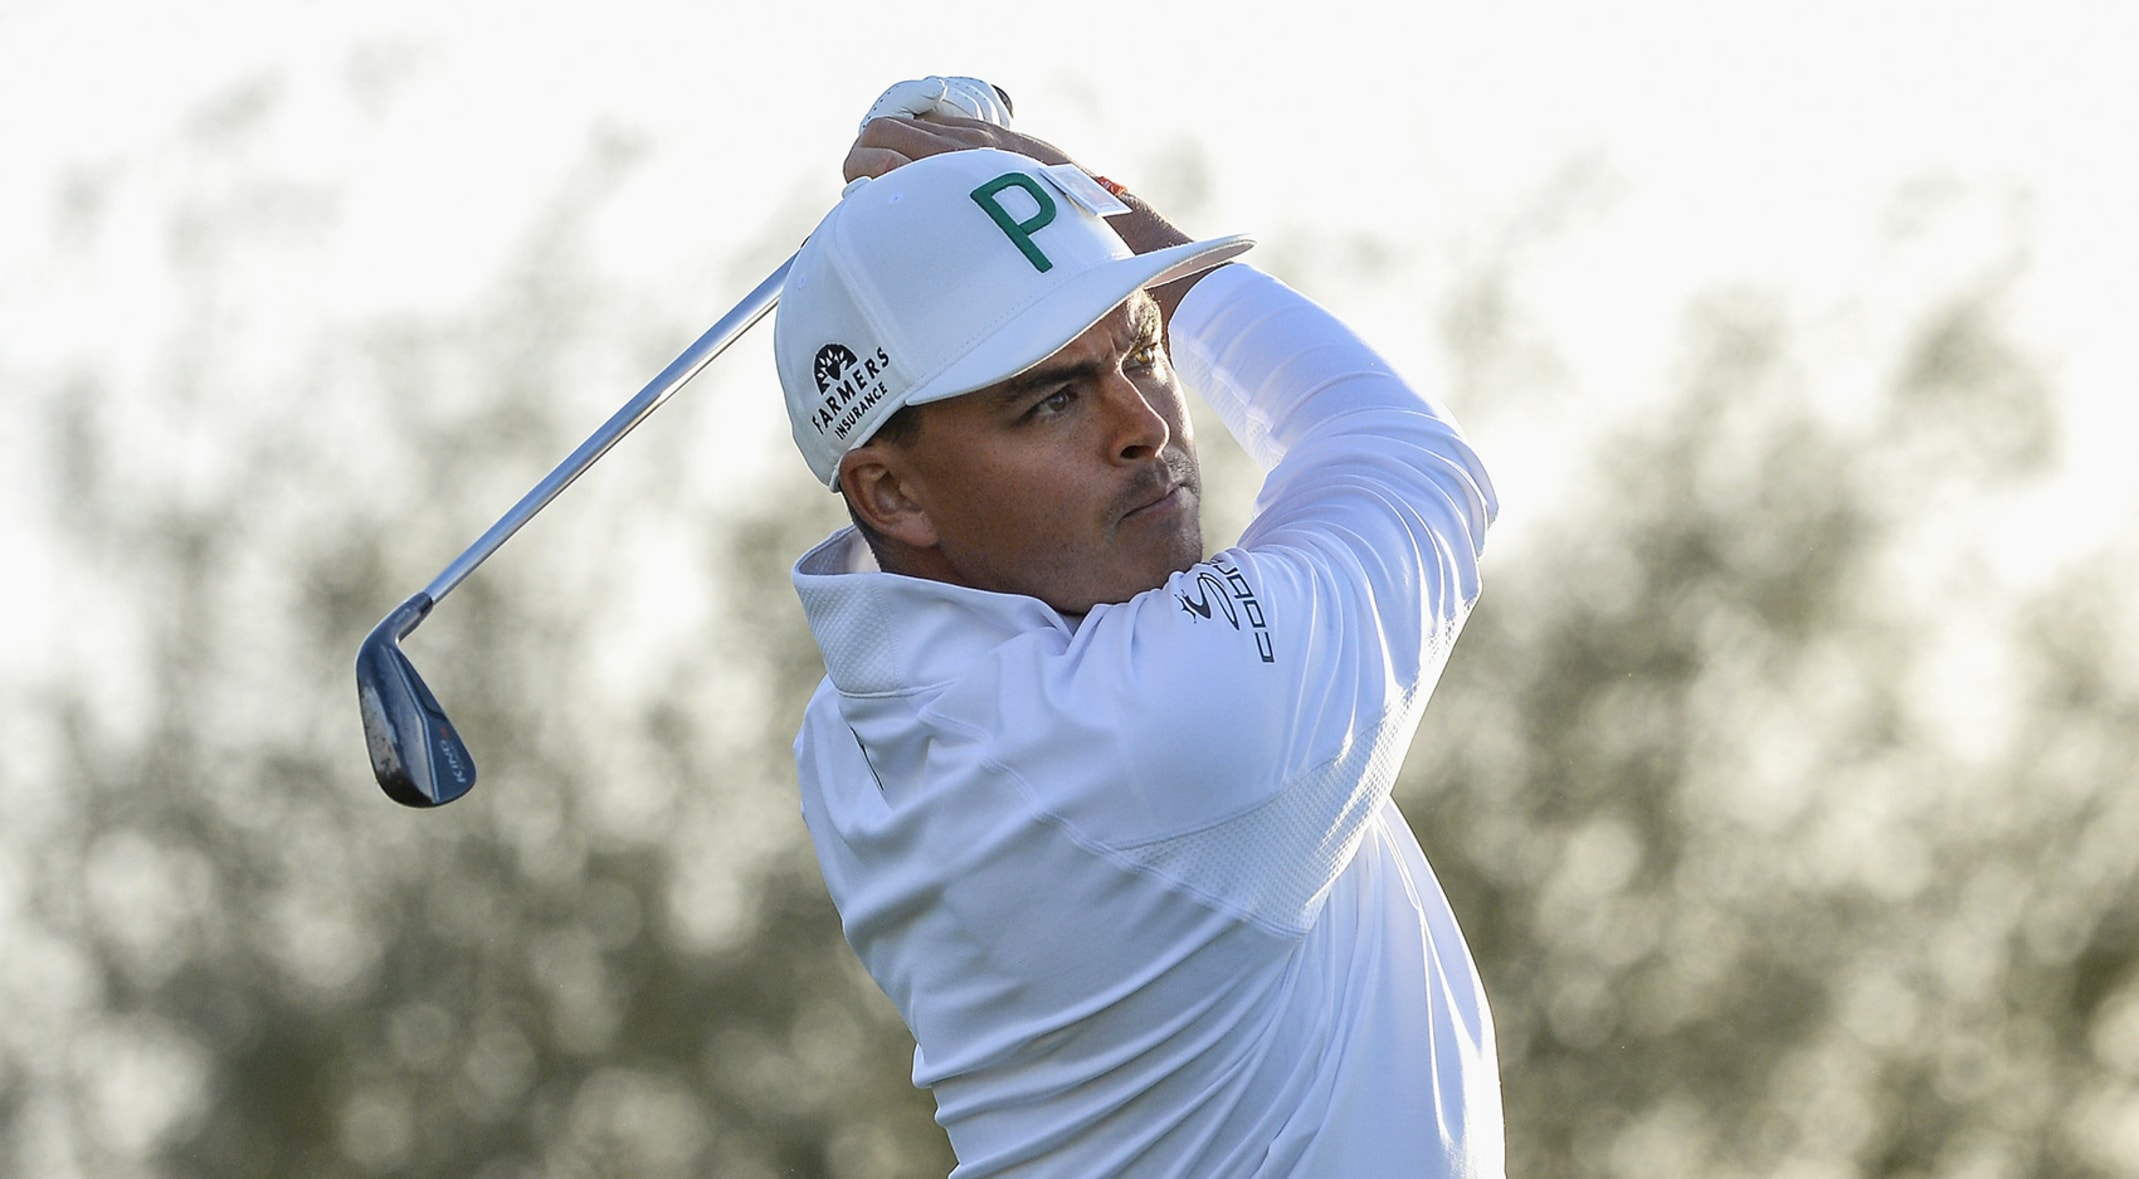 450a71664e0 Rickie Fowler wore this recyclable Puma hat during the first round of the  Waste Management Phoenix